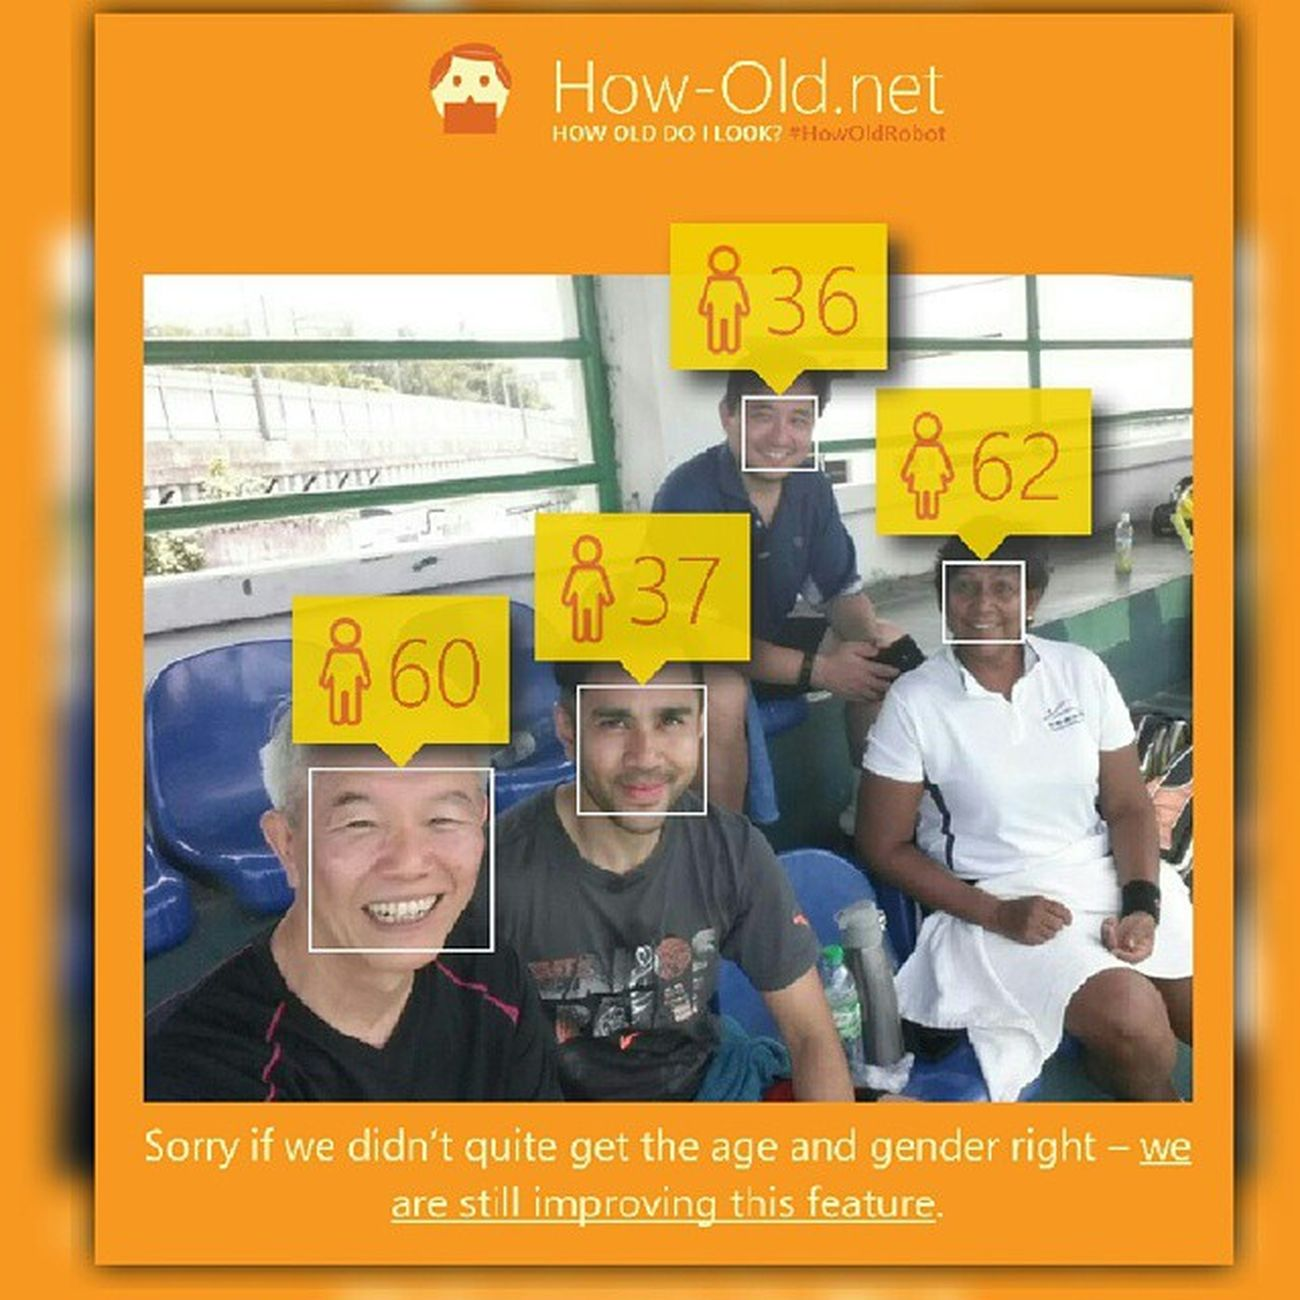 HowOldRobot is slightly off with the age Funny Dontangryah Justforfun